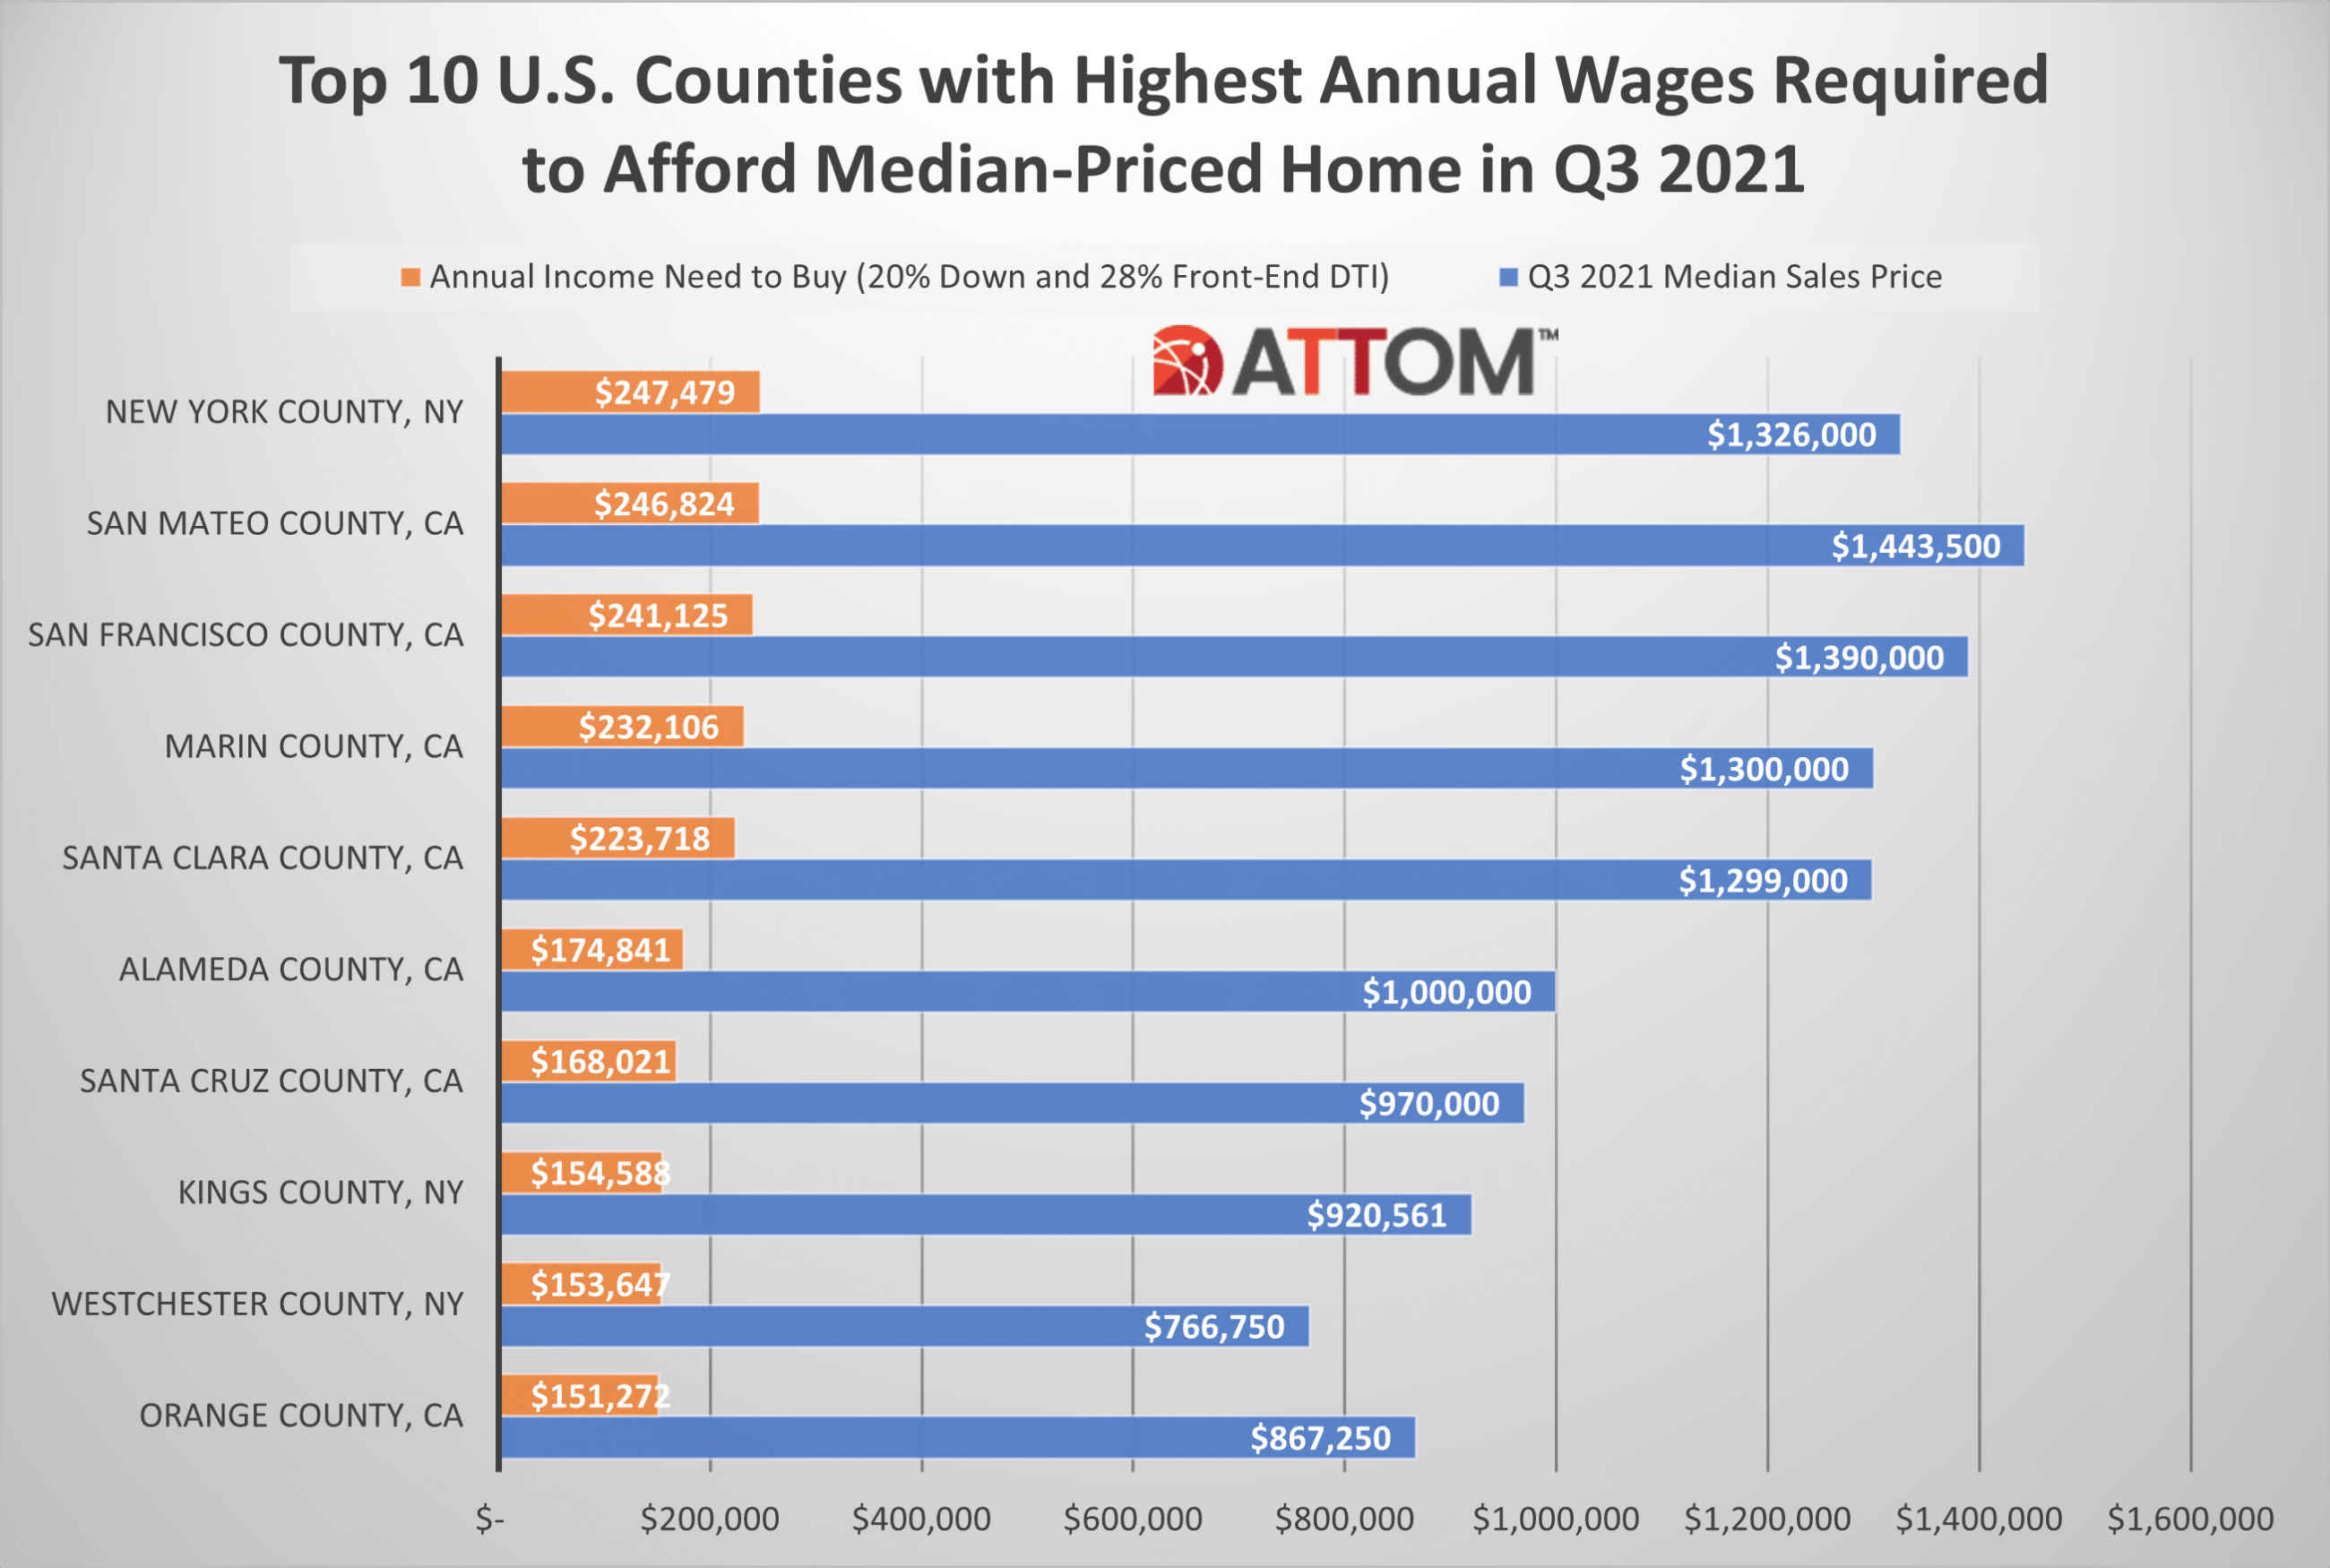 Bar chart showing the top 10 U.S. counties with the highest annual wages needed to afford a median-priced home.